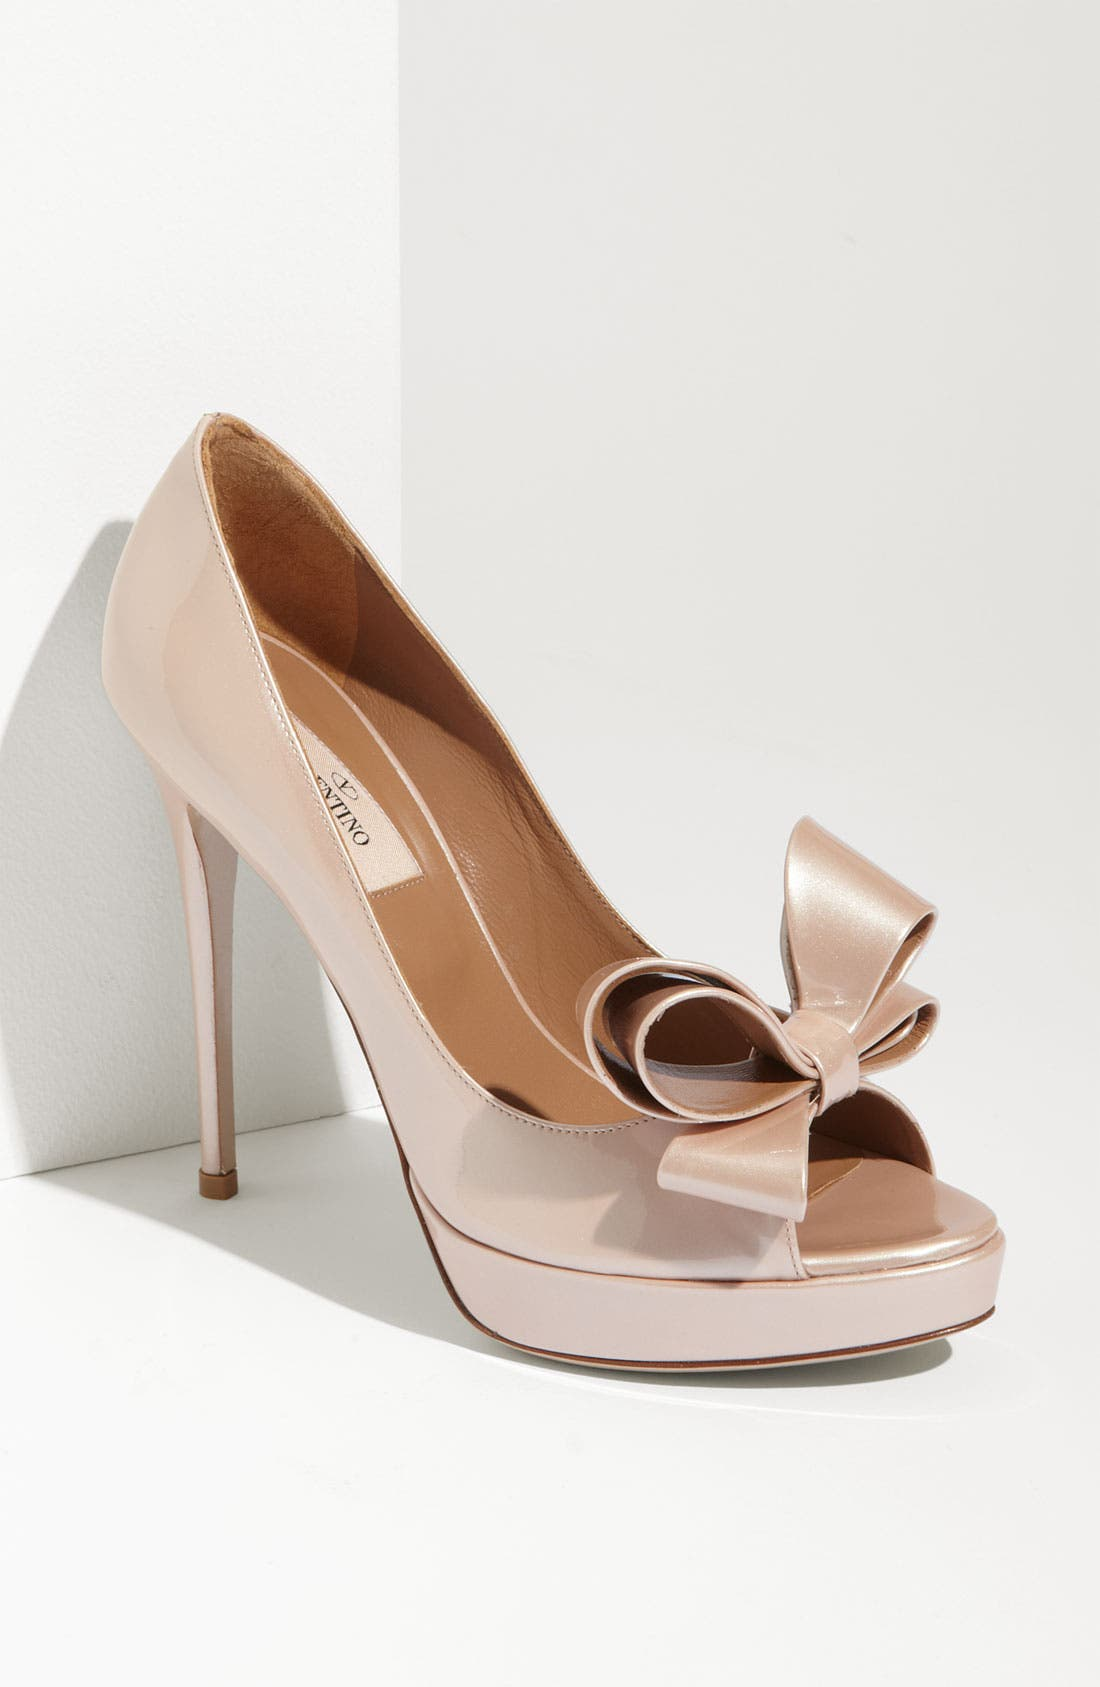 Main Image - Valentino Couture Bow Pump